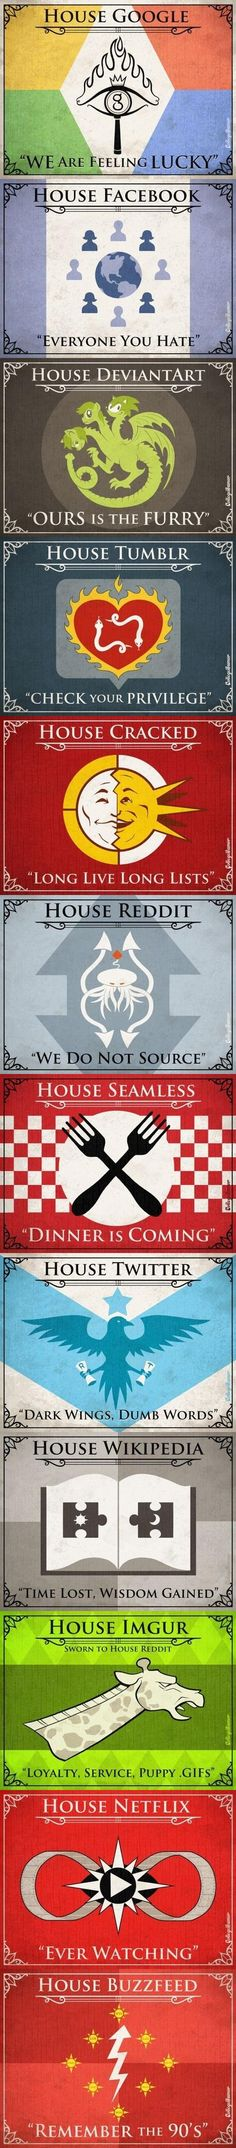 Game of Thrones (TV series): What are some of the best Game of Thrones type sigils?